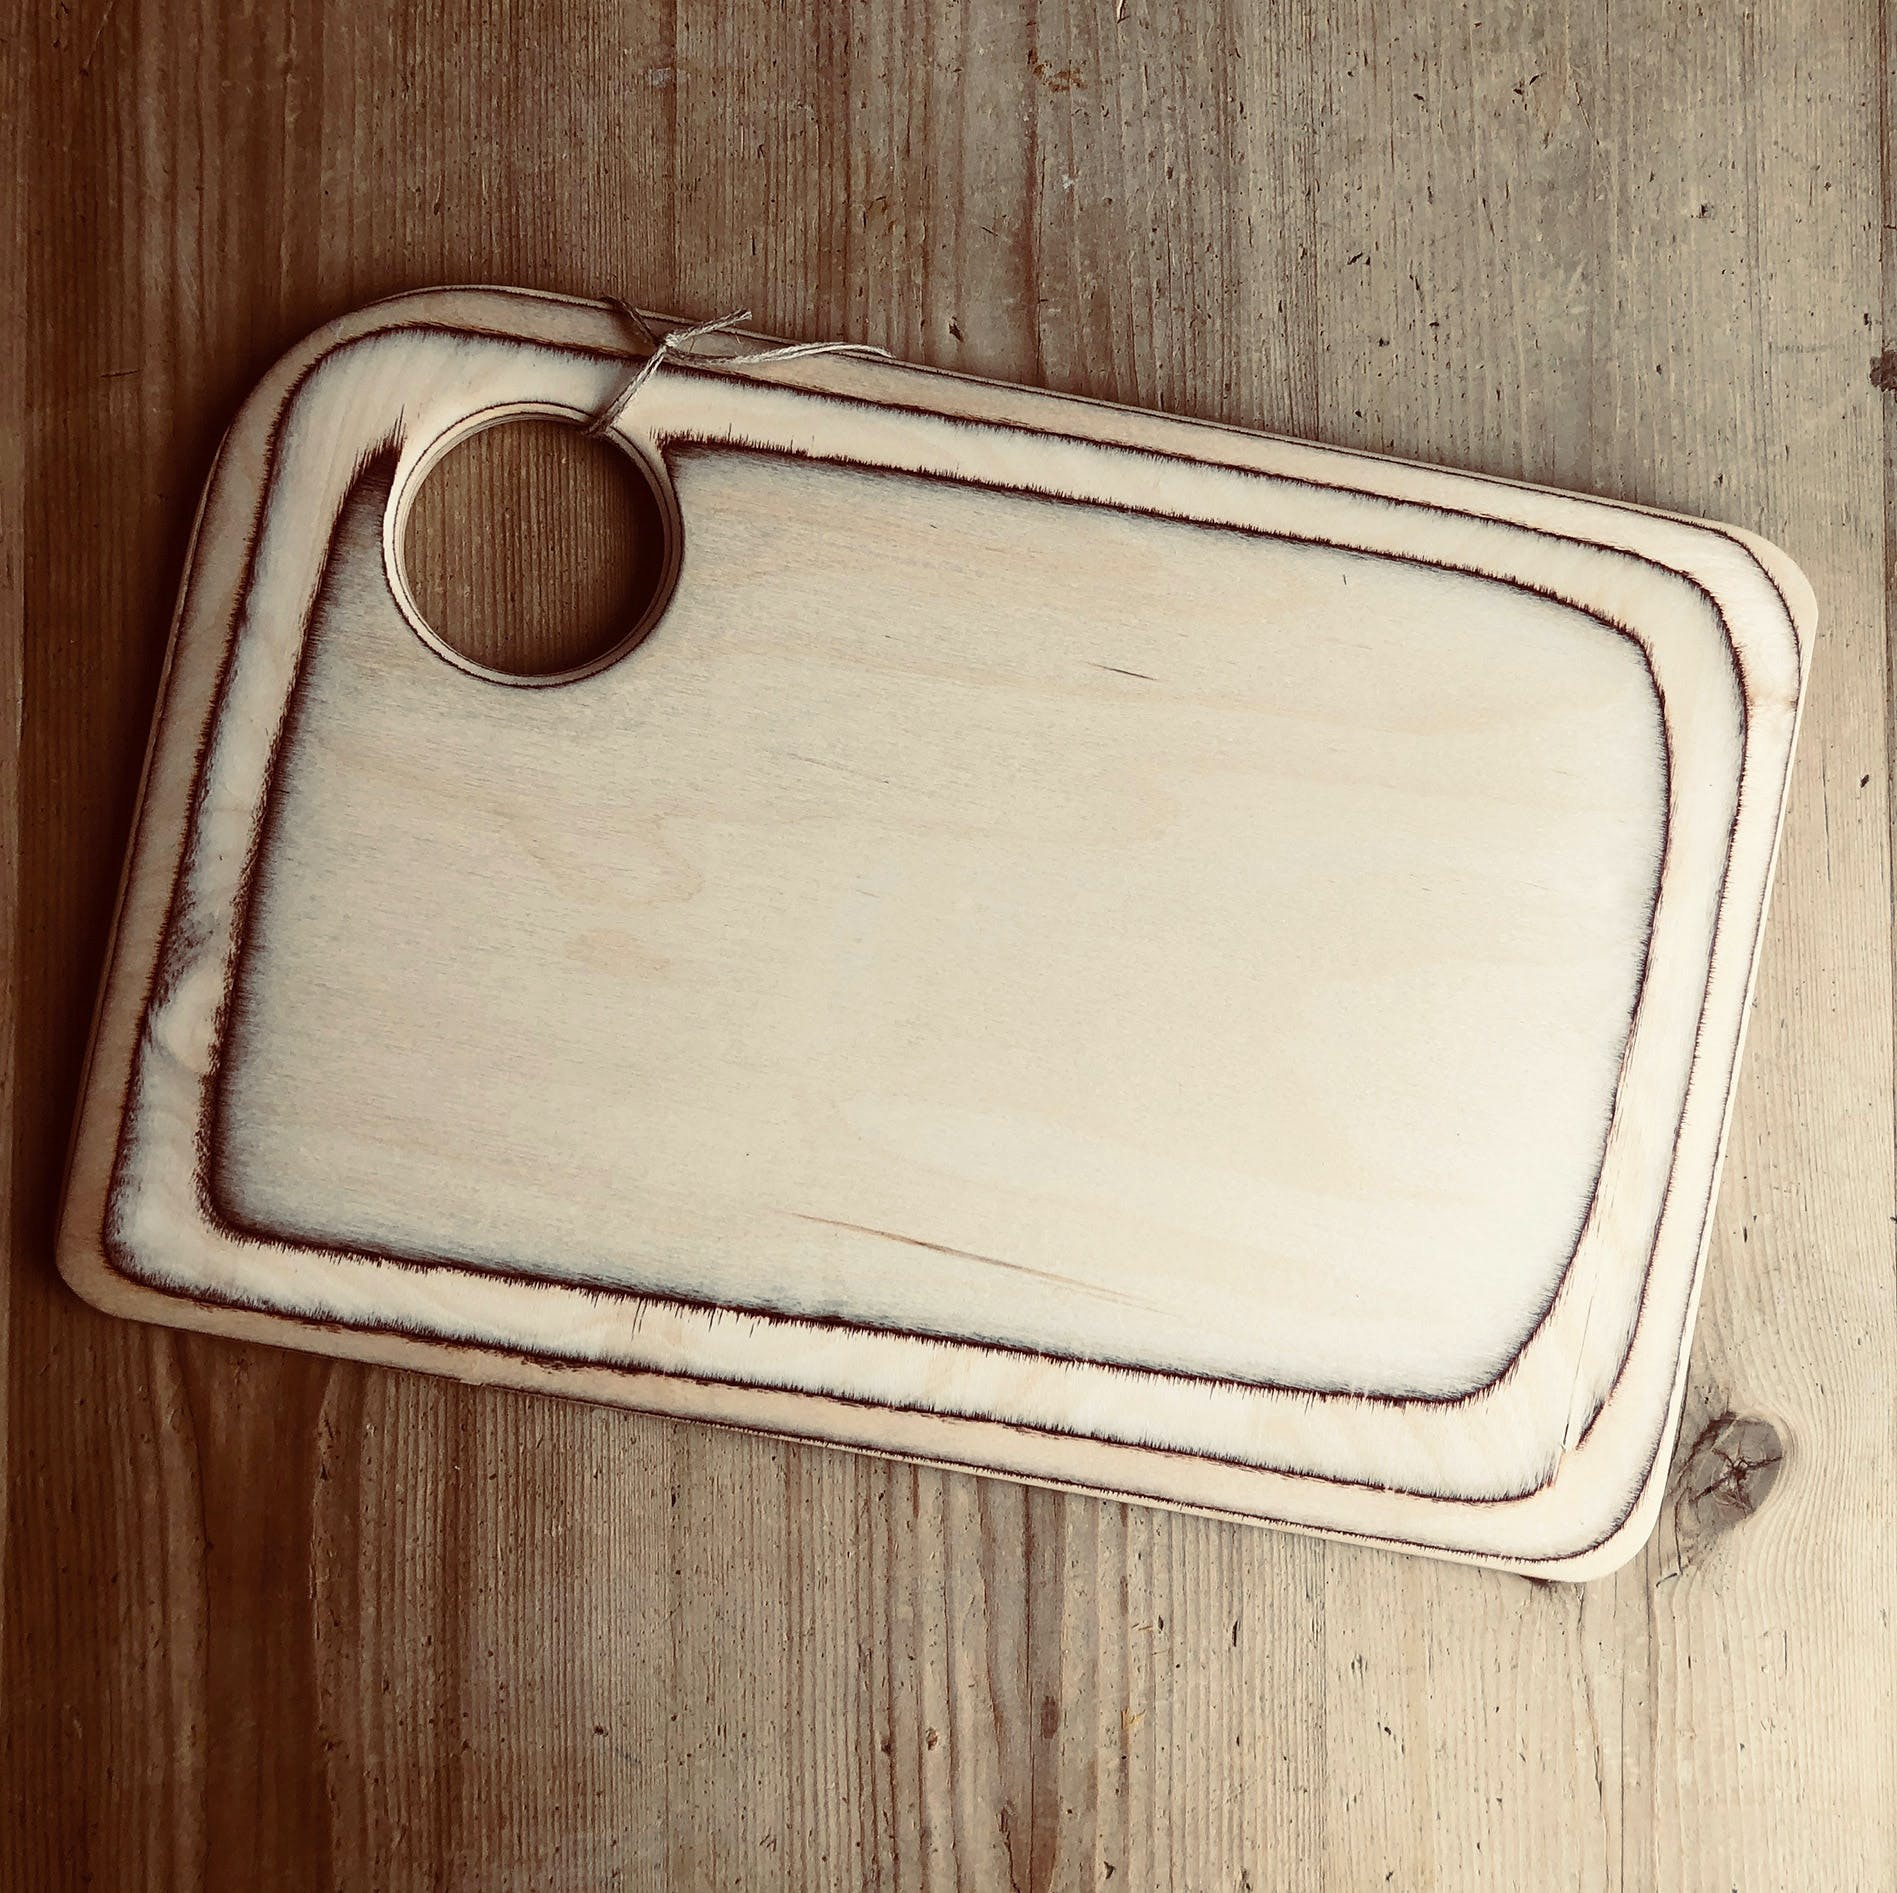 BIRCH-RECATNGLE-CHEESE-BOARD